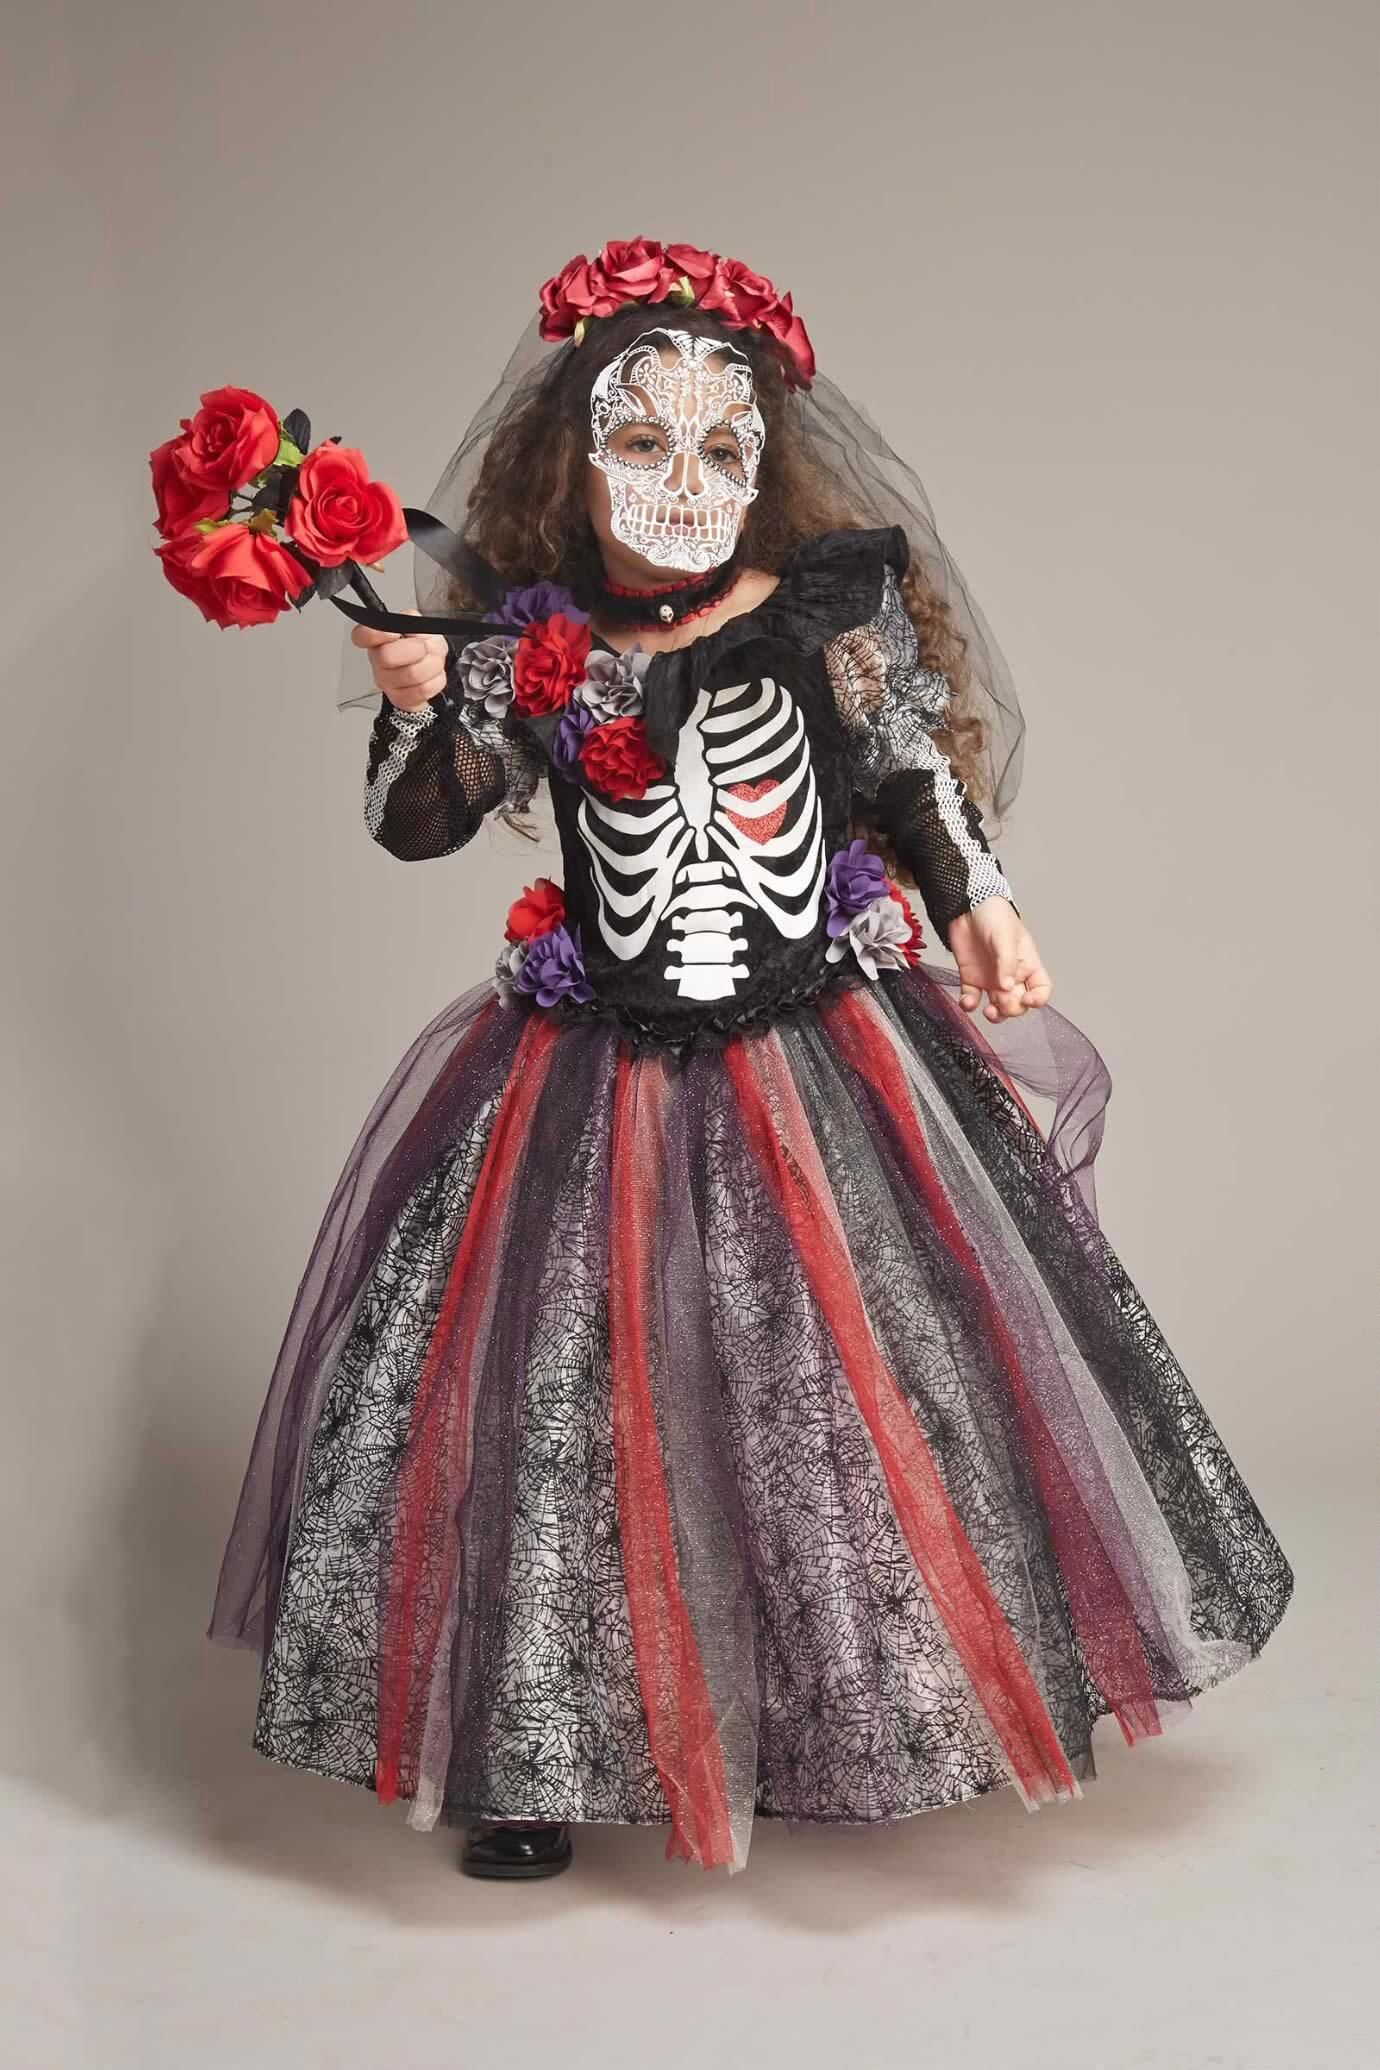 Day Of The Dead Catrina Costume For Girls - Catrina costume, Costumes and Chasing fireflies